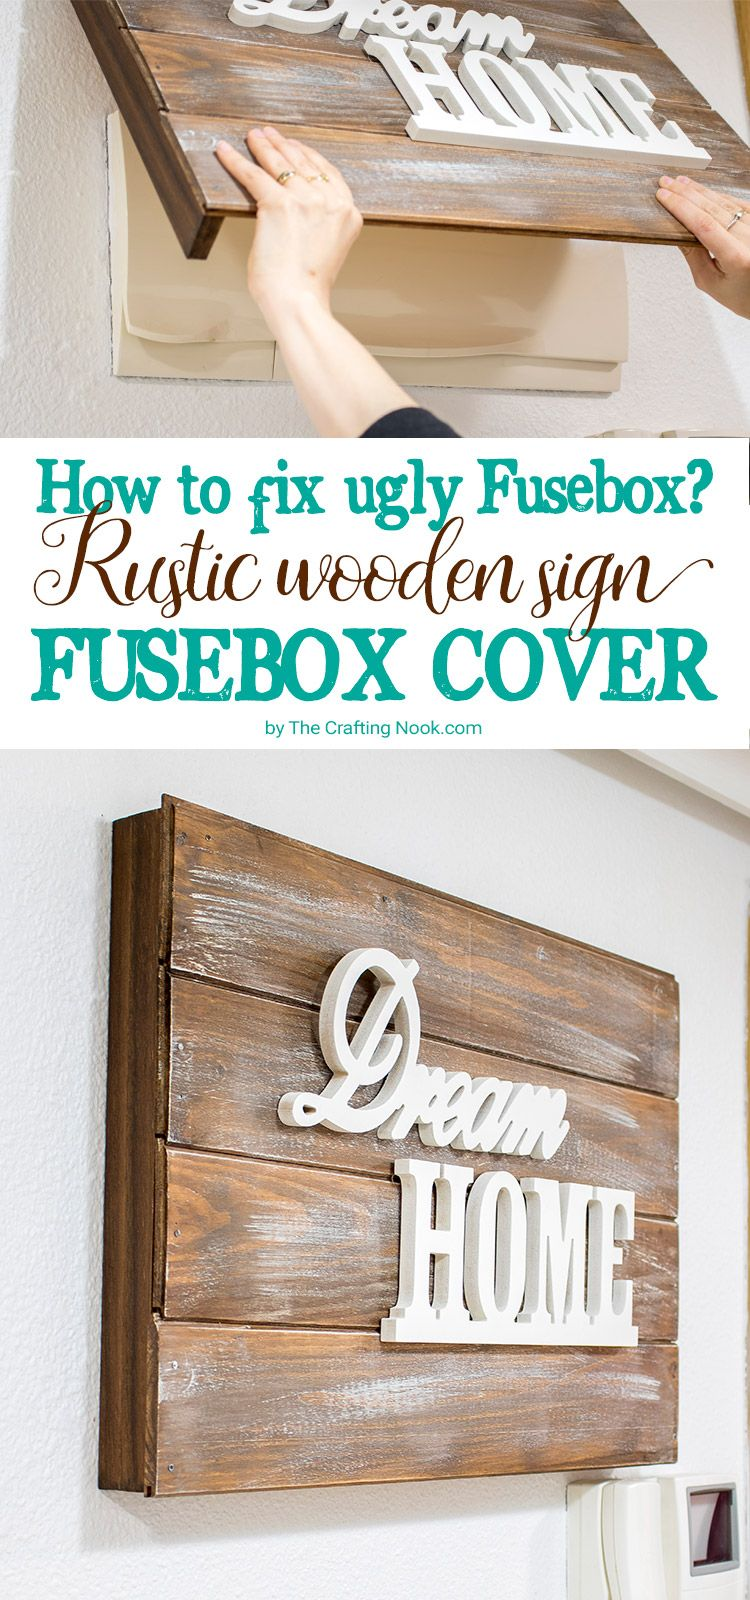 small resolution of rustic wooden sign fusebox cover how to the crafting nook by titicrafty